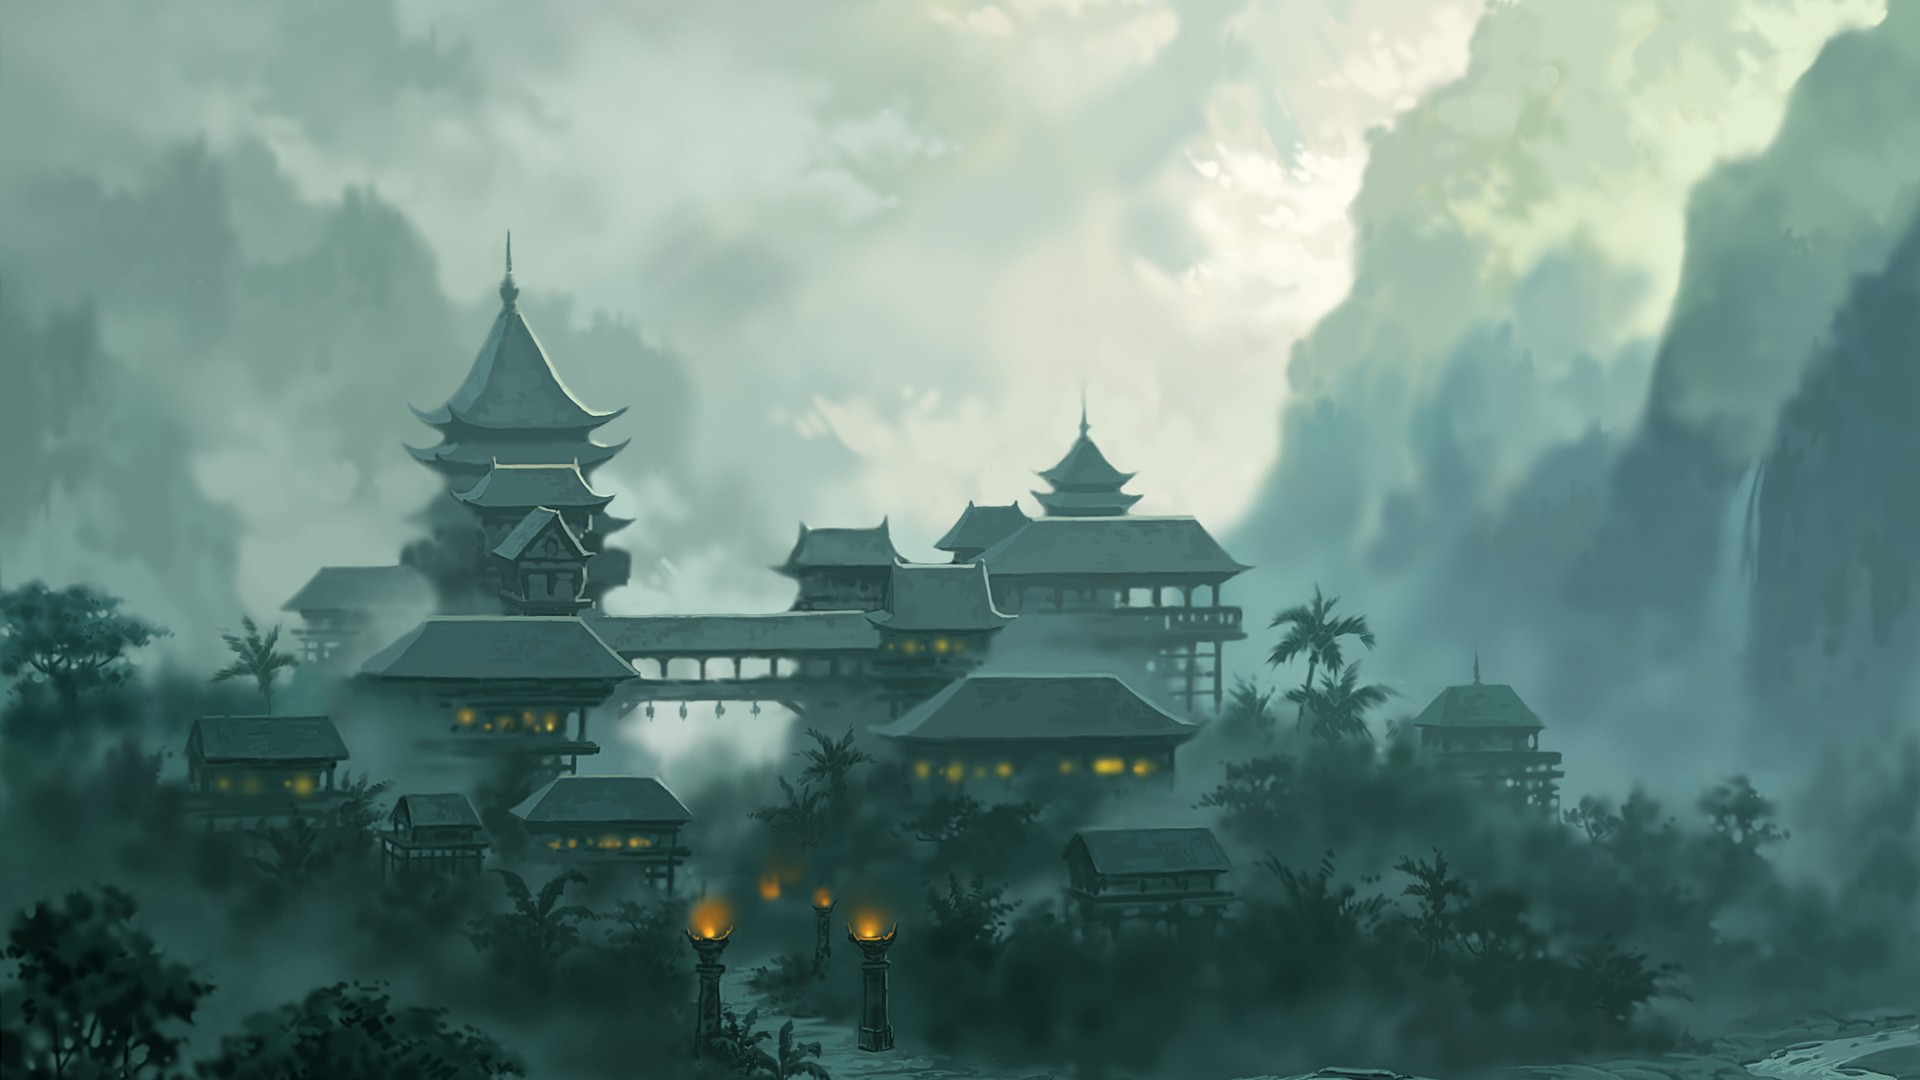 The monastery in the Japanese style